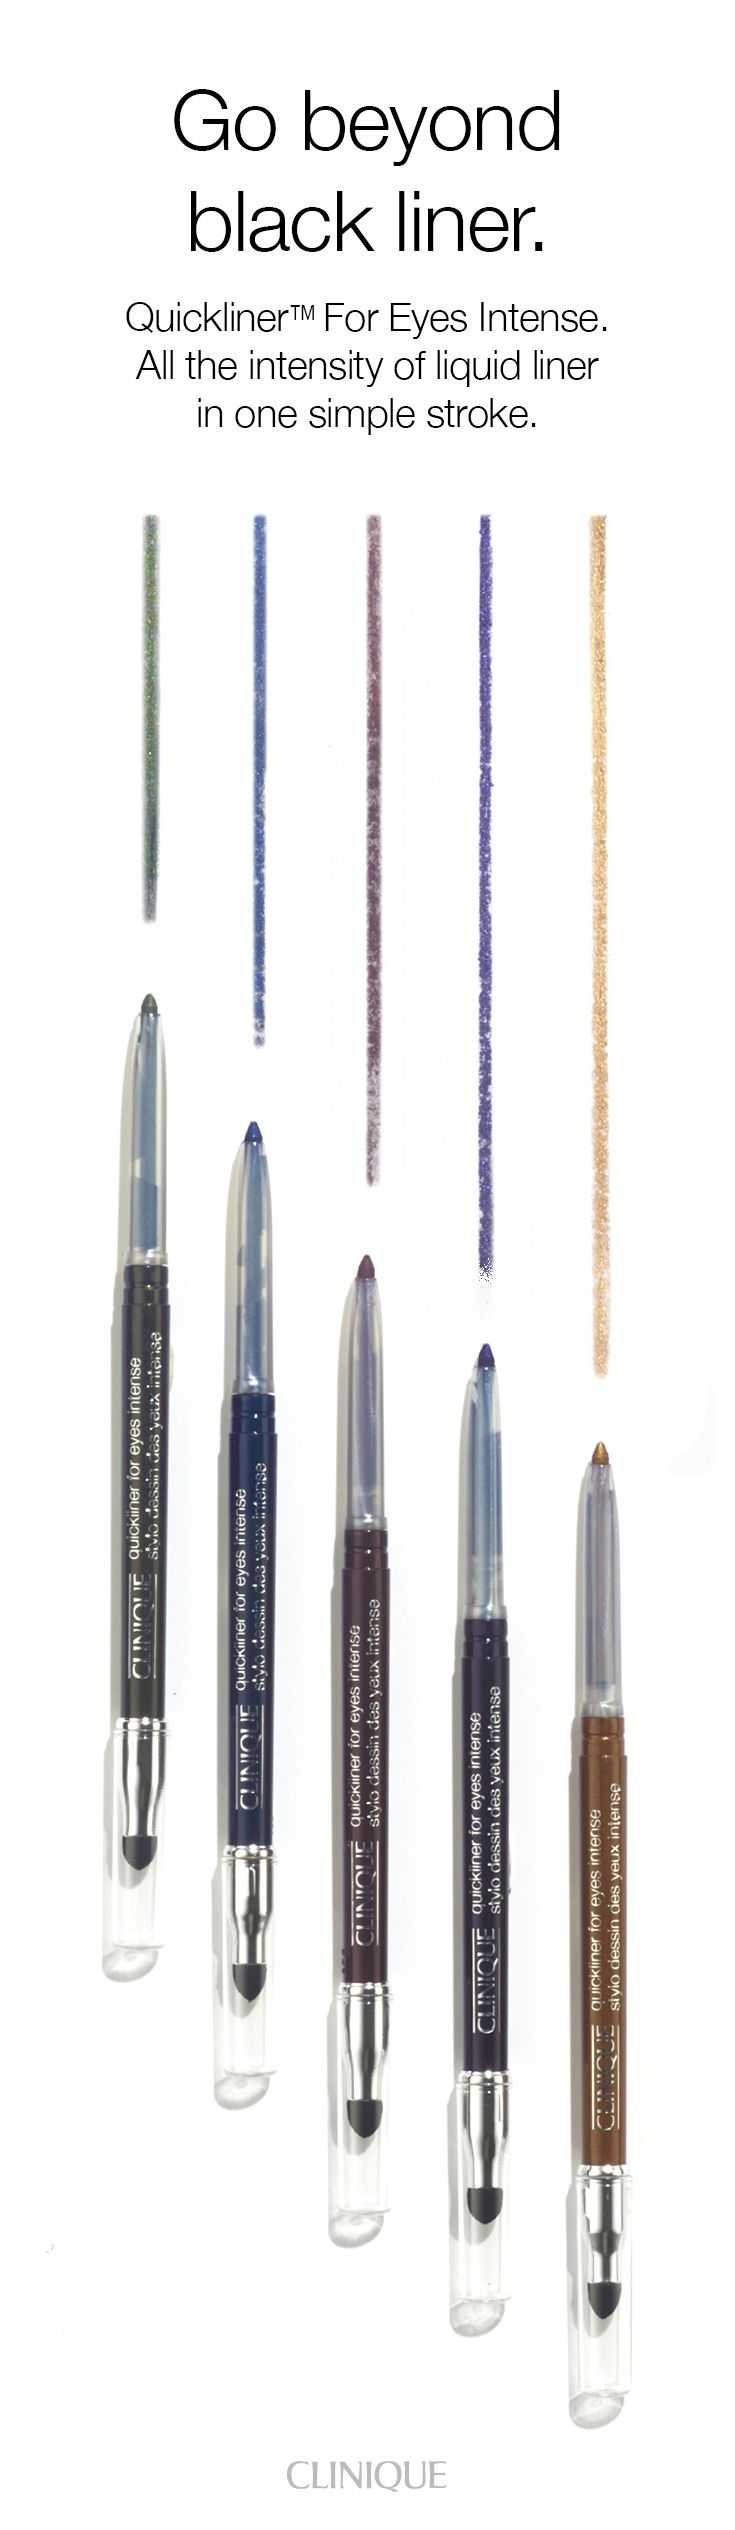 """Go beyond black eyeliner with Quickliner for Eyes Intense. No need to be subtle when it's so easy to move into the deepest, most dramatic range. Find all the intensity of a liquid liner in one simple stroke. Silky formula glides on. Stays on all day. Never needs sharpening. """"Smoke"""" with the smudge tip on the opposite end. Ophthalmologist Tested."""